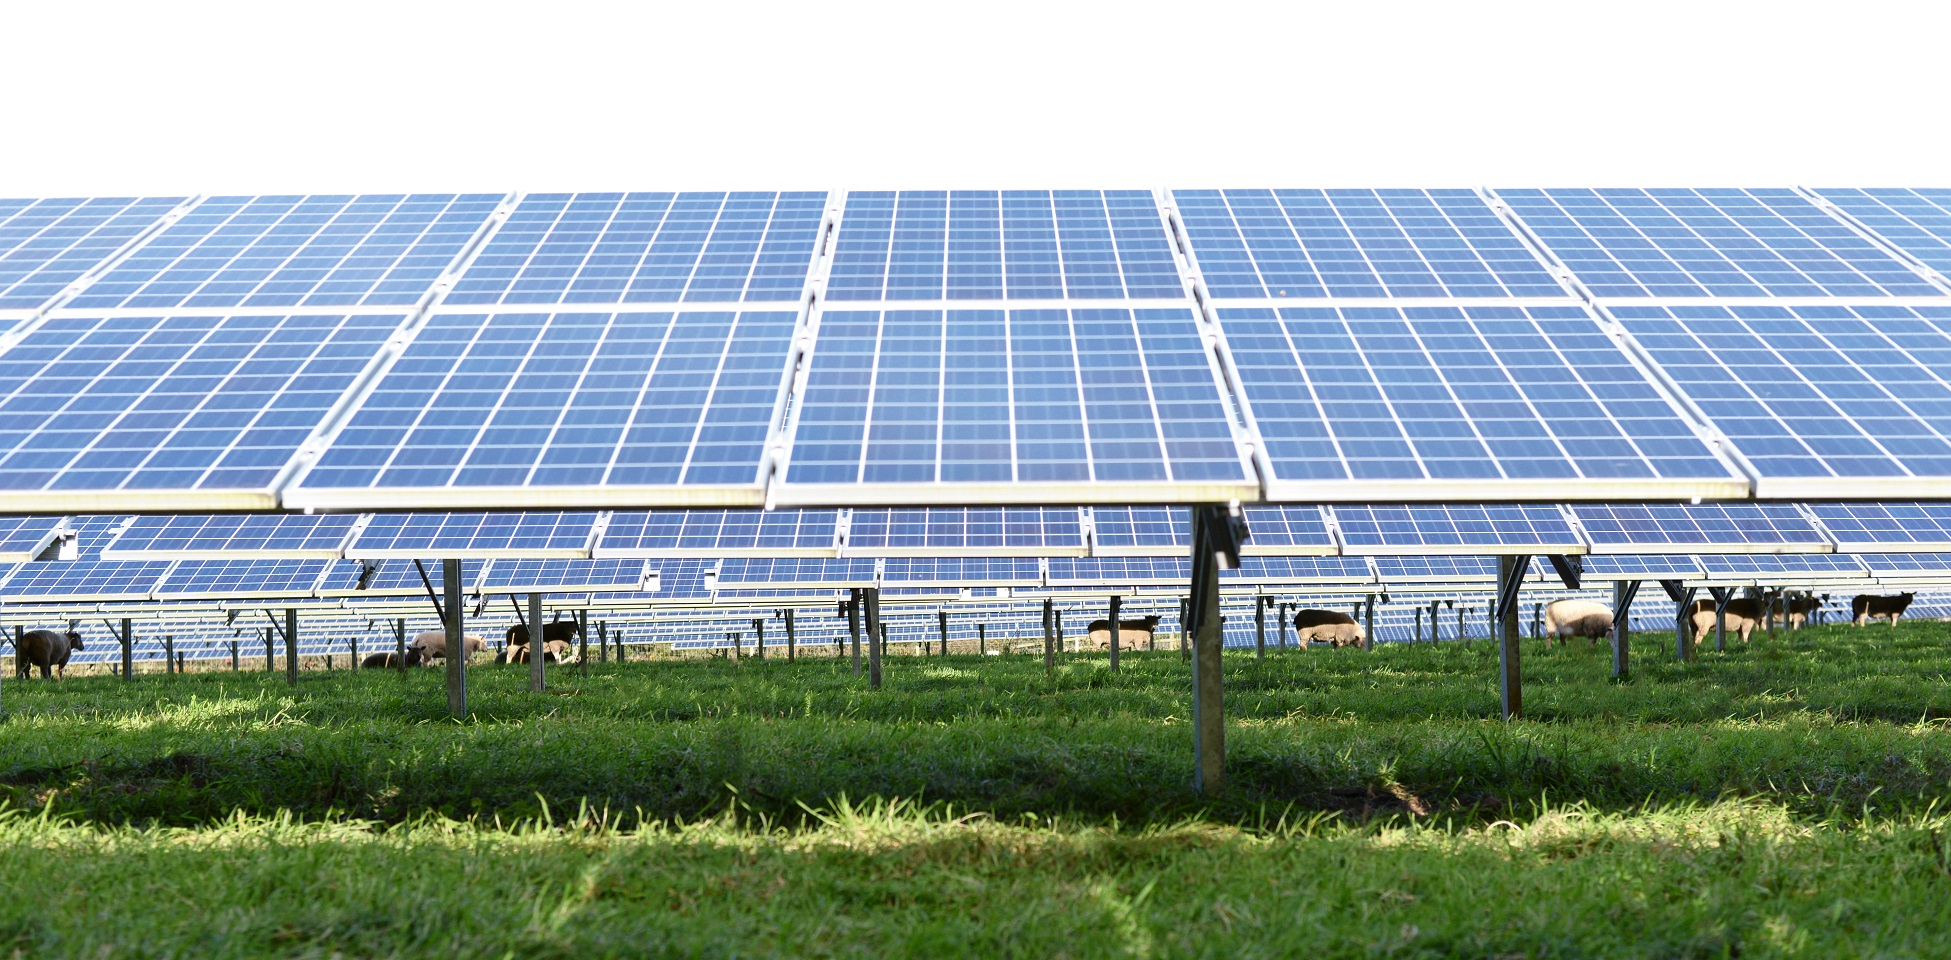 The initiative will support the development of PV solutions in portfolios of distributed and utility scale solar. Image: Image: BayWa r.e.